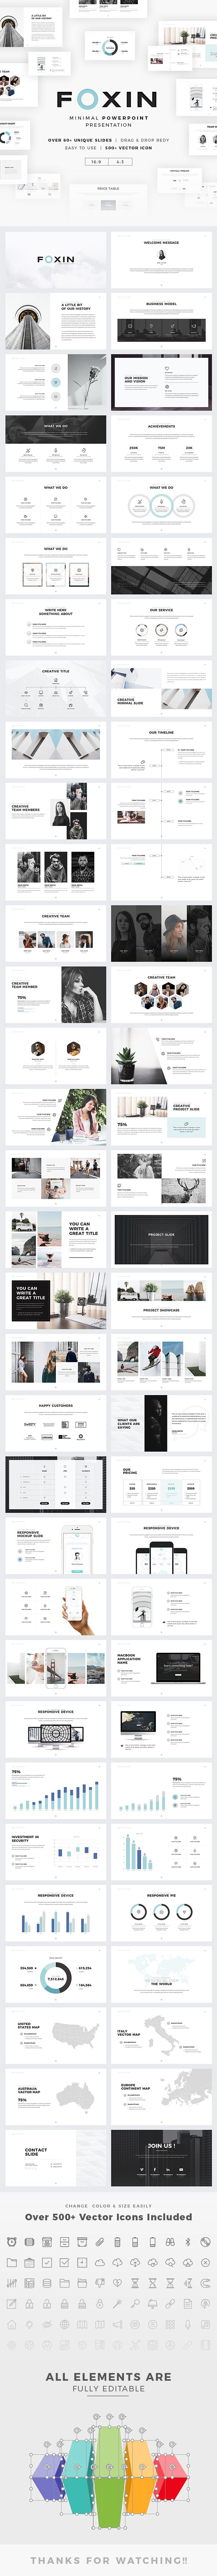 Foxin Powerpoint — Powerpoint PPTX #portfolio #presentation • Available here ➝ https://graphicriver.net/item/foxin-powerpoint/20854452?ref=pxcr